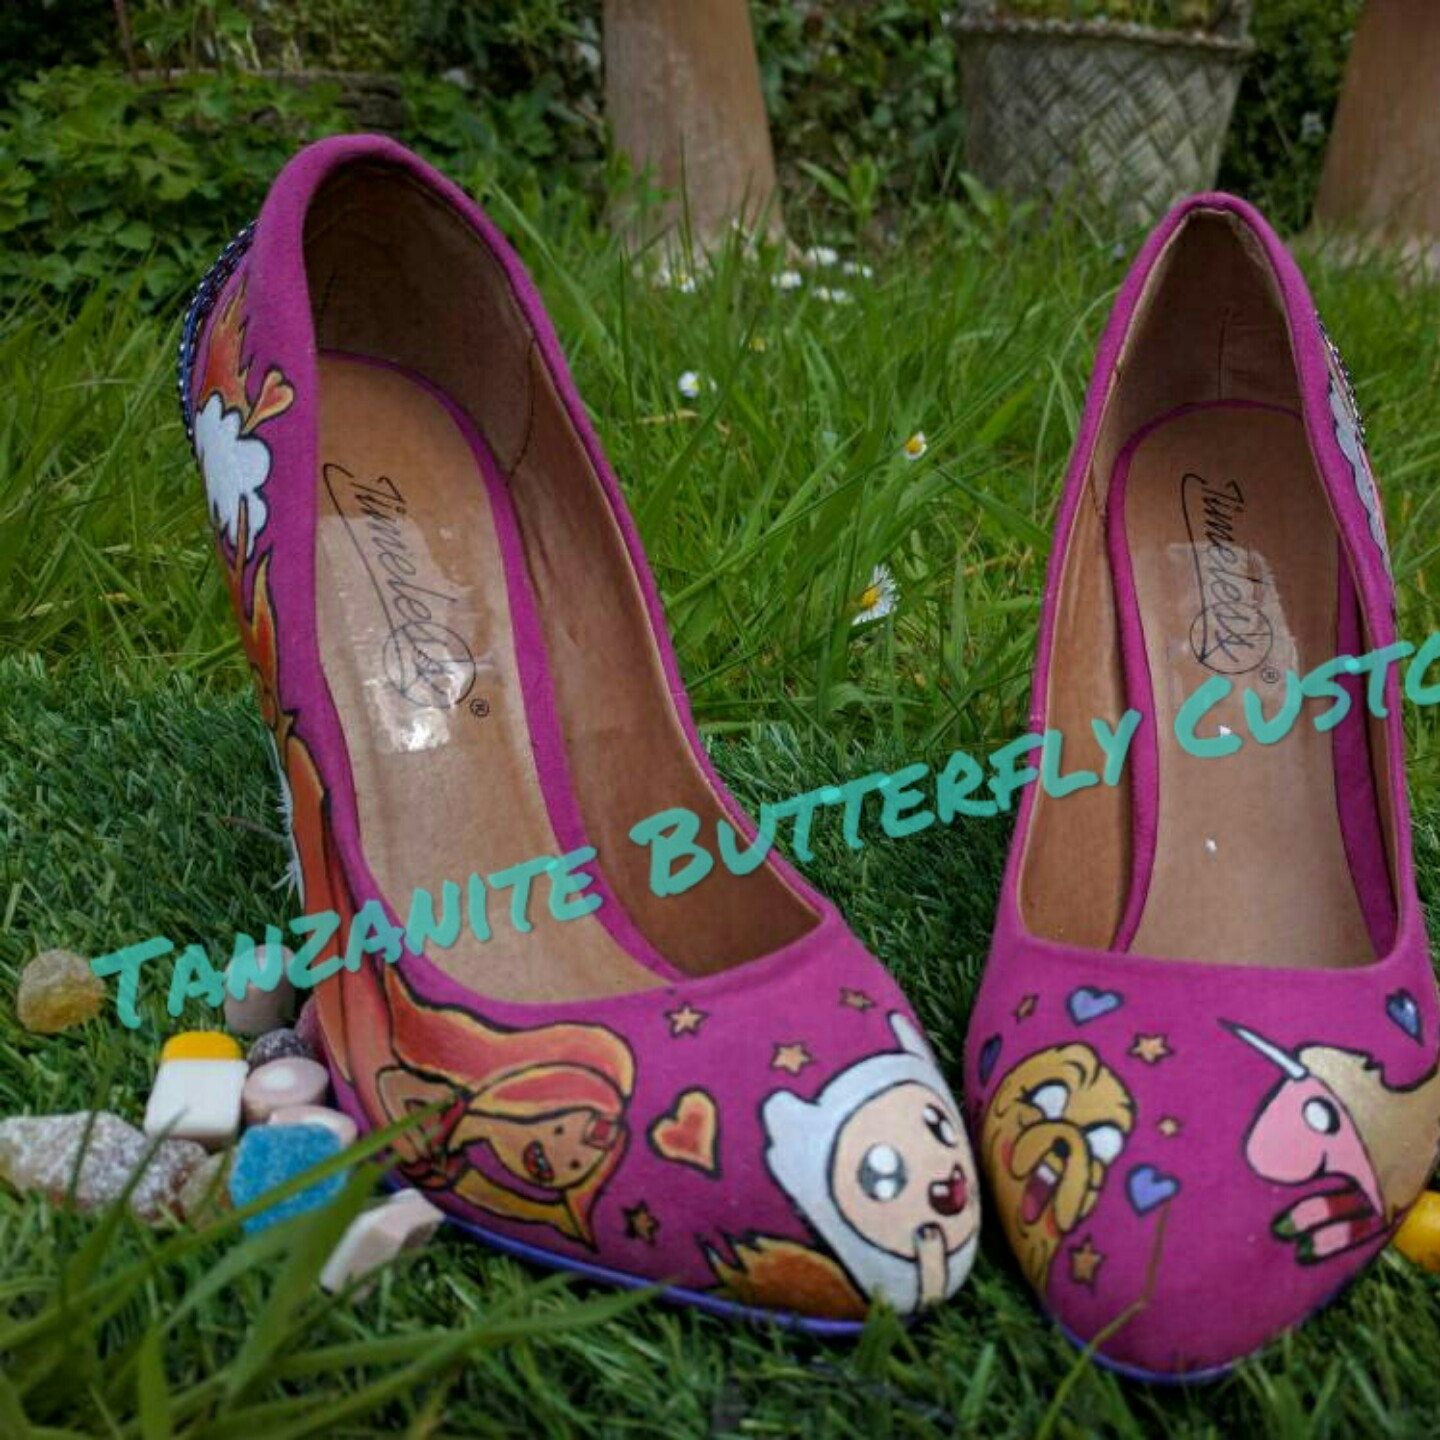 Adventure Time Love Shoes up for sale!